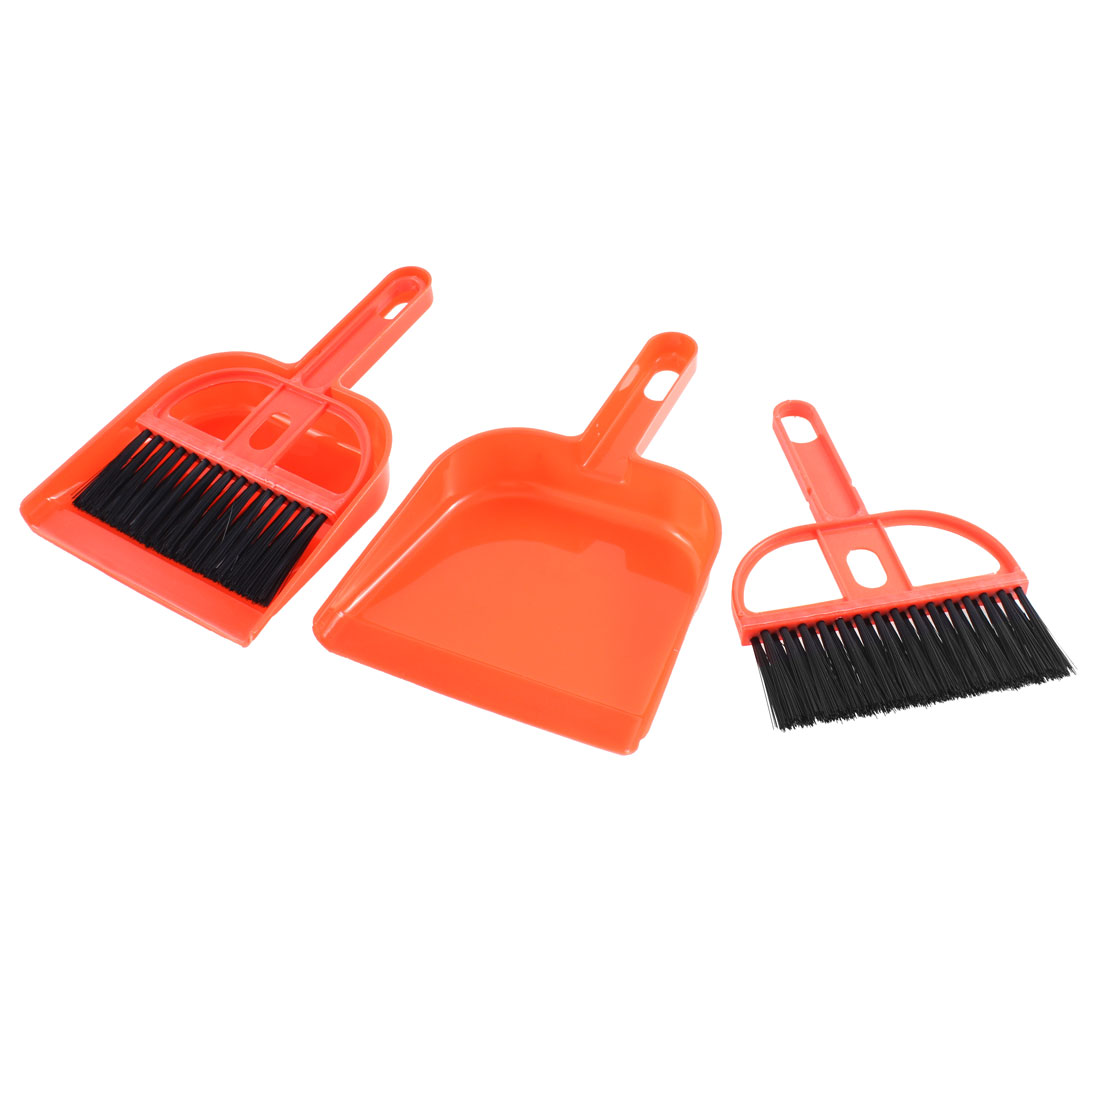 Car Dashboard Computer Desktop Laptop Cleaning Brush Dustpan Orange 2pcs